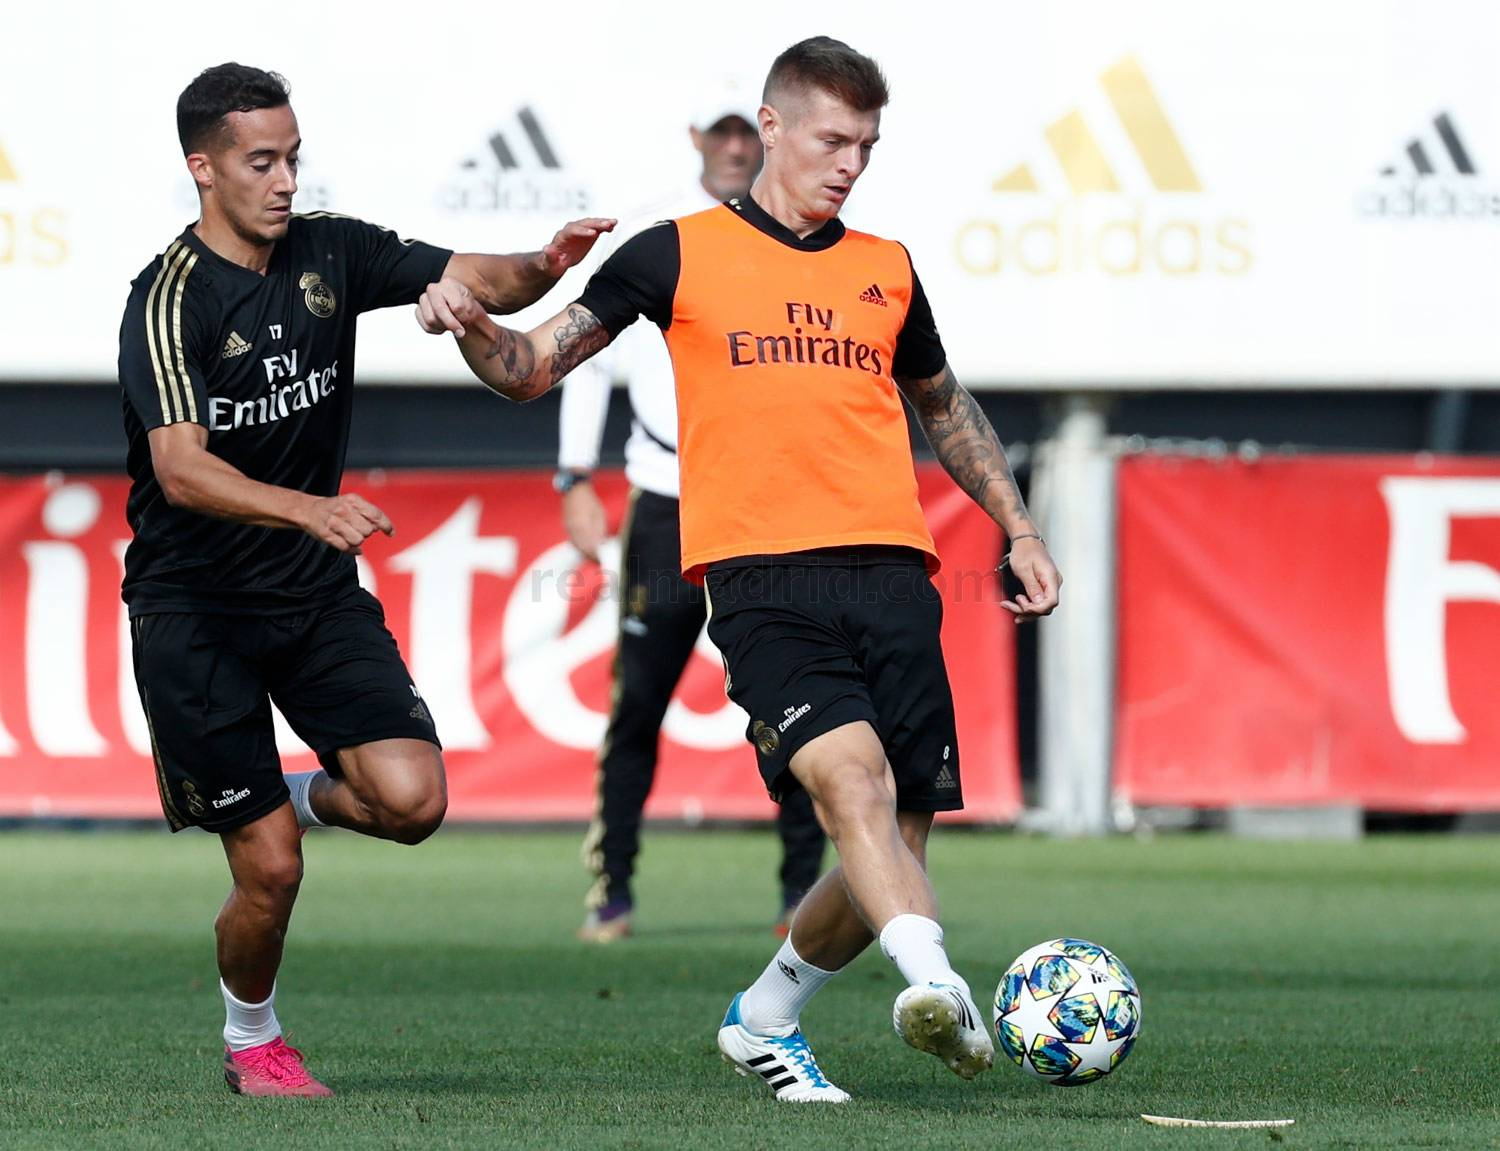 Real Madrid - Entrenamiento del Real Madrid  - 16-09-2019